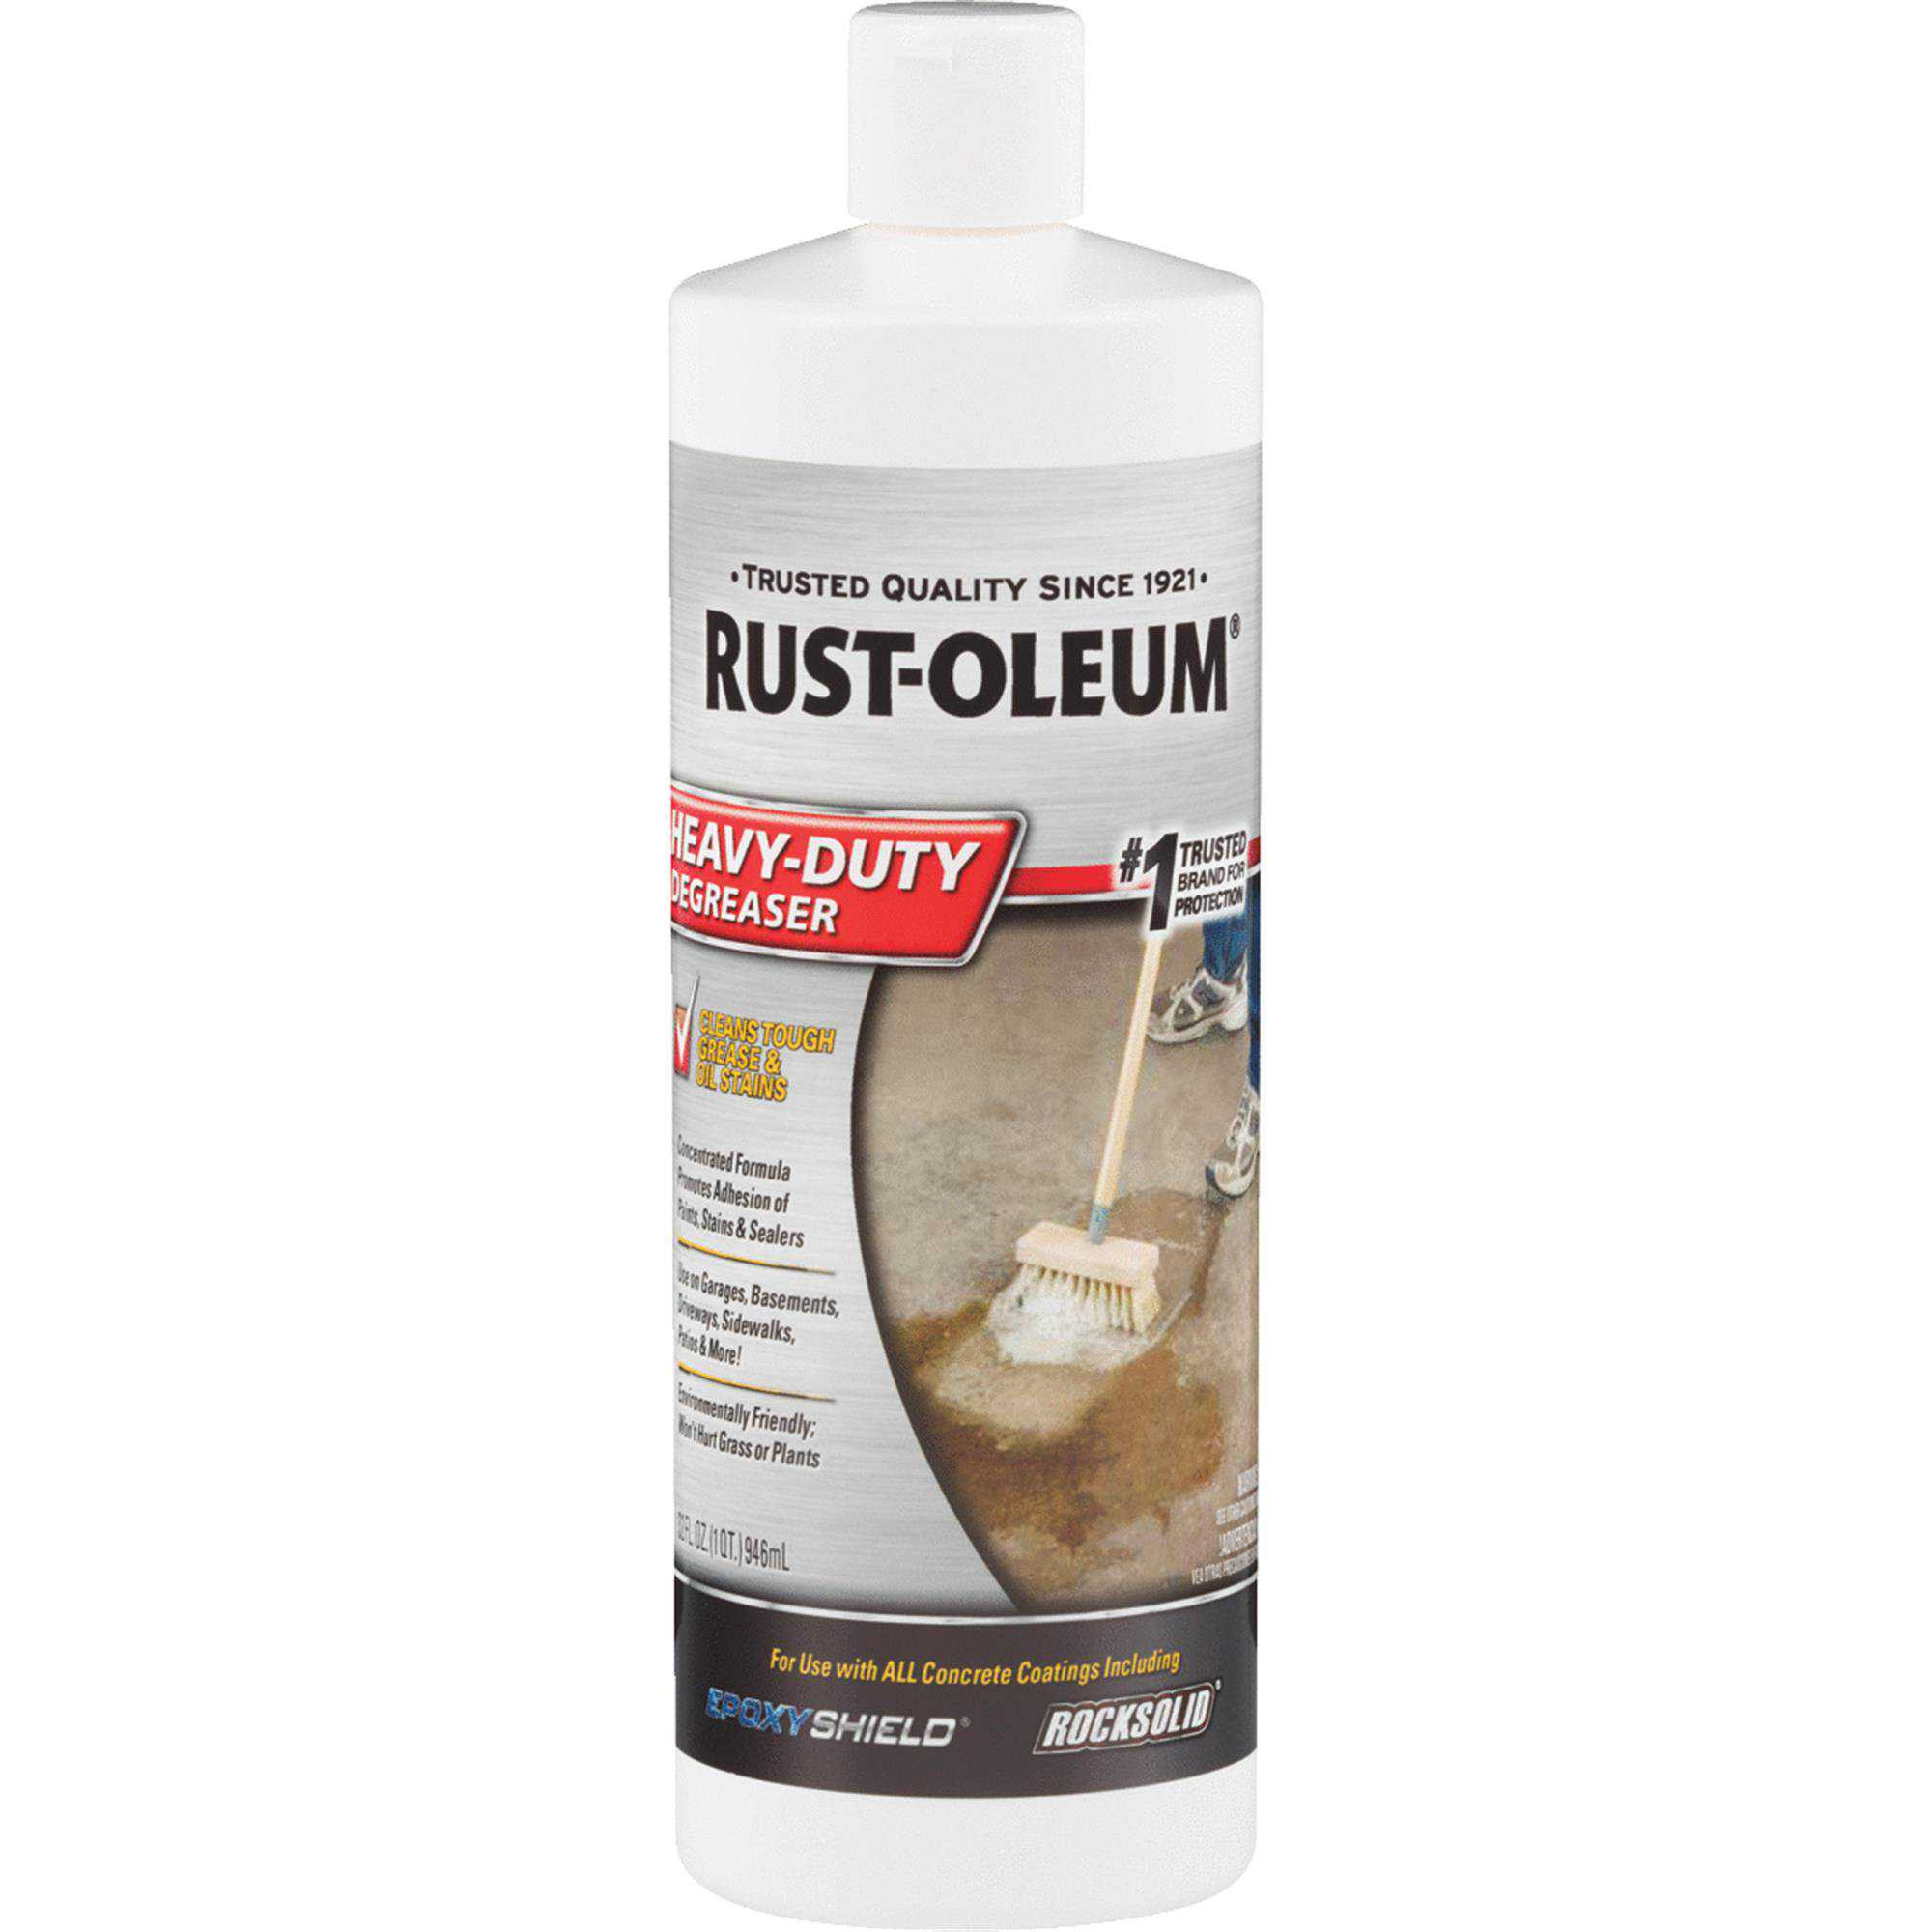 Rust-Oleum Heavy Duty Degreaser